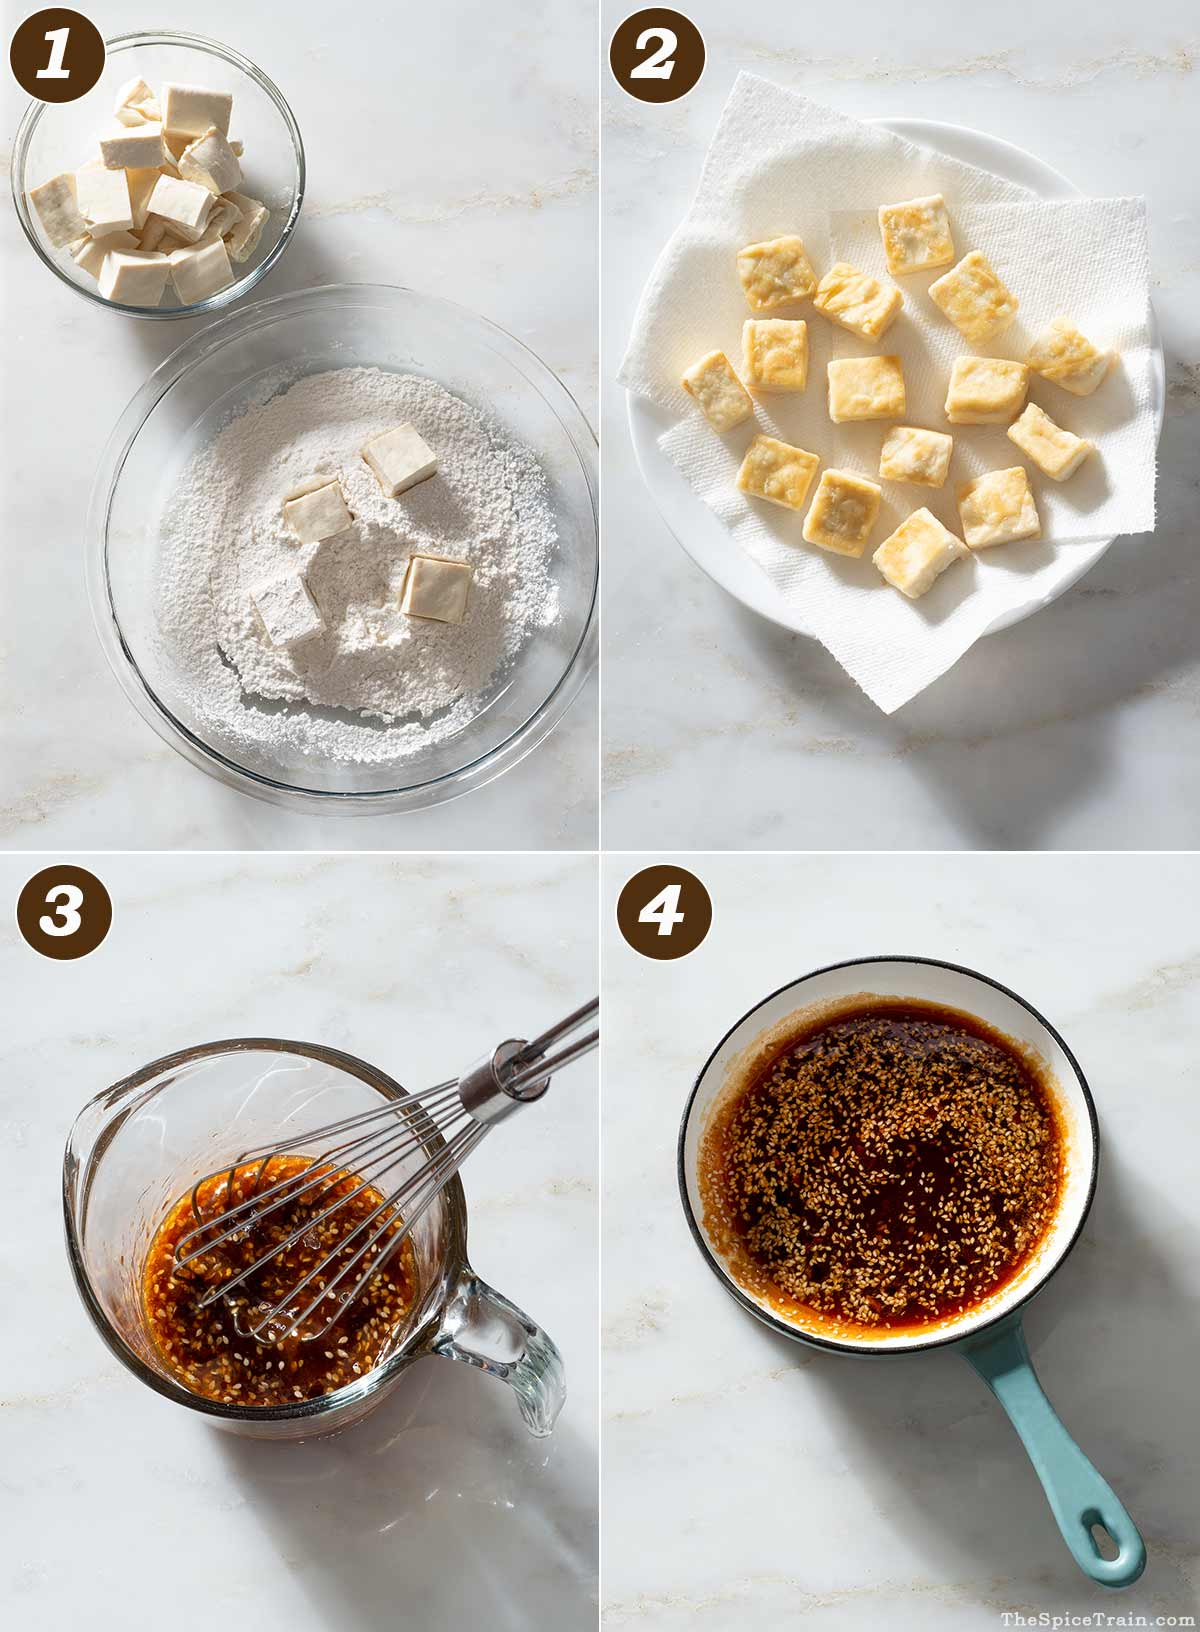 Raw and fried tofu cubes and sesame sauce before and after cooking.